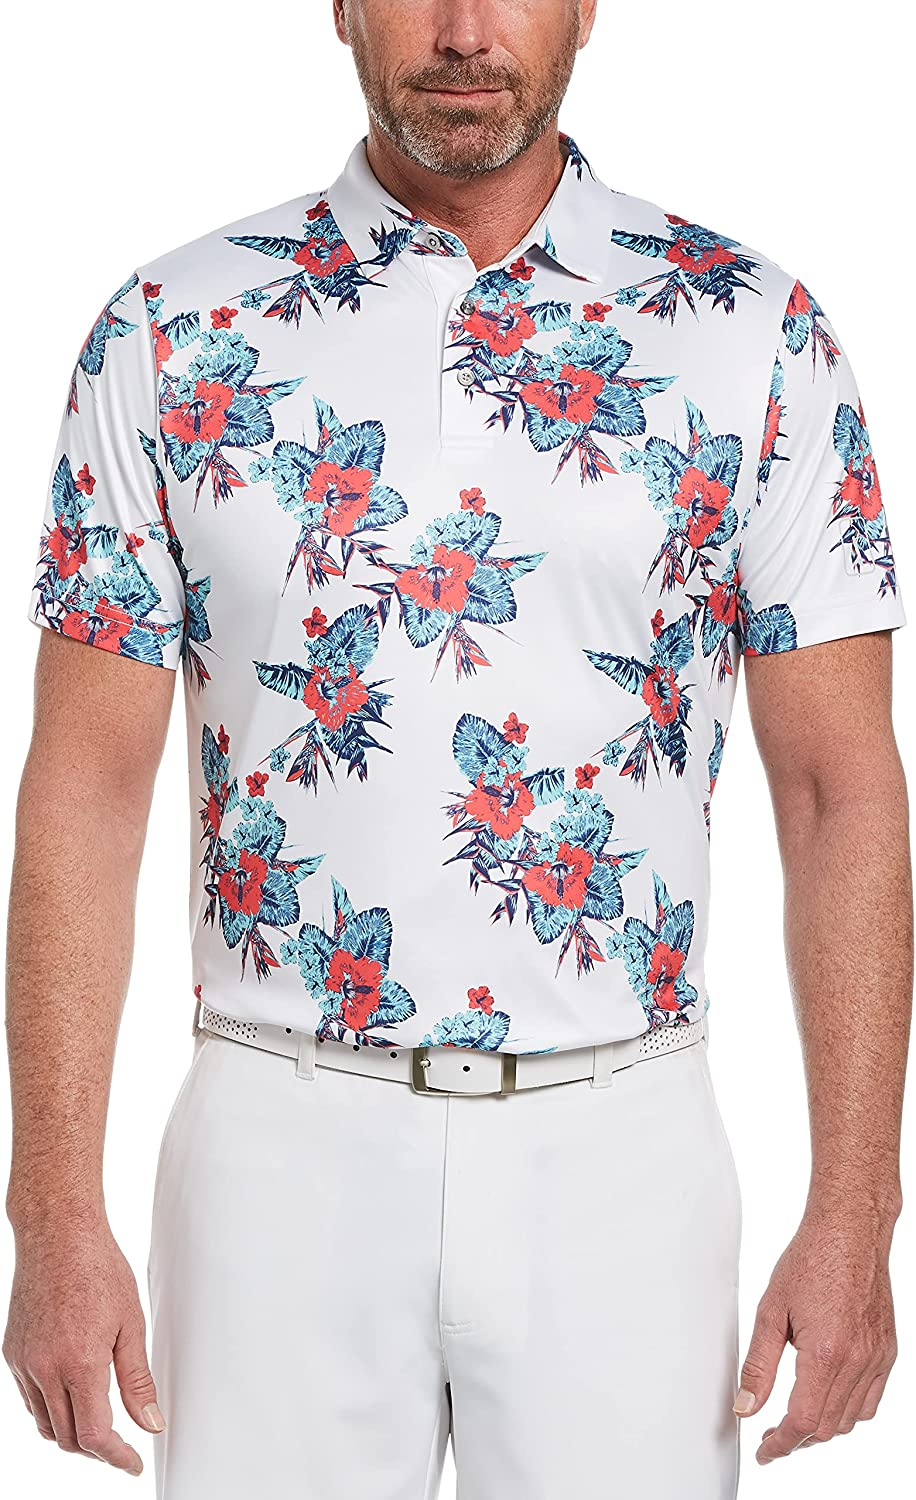 Our shop OFFers the best service PGA TOUR Men's Allover Tropical Print Shi Polo Short Golf Sleeve Limited time sale